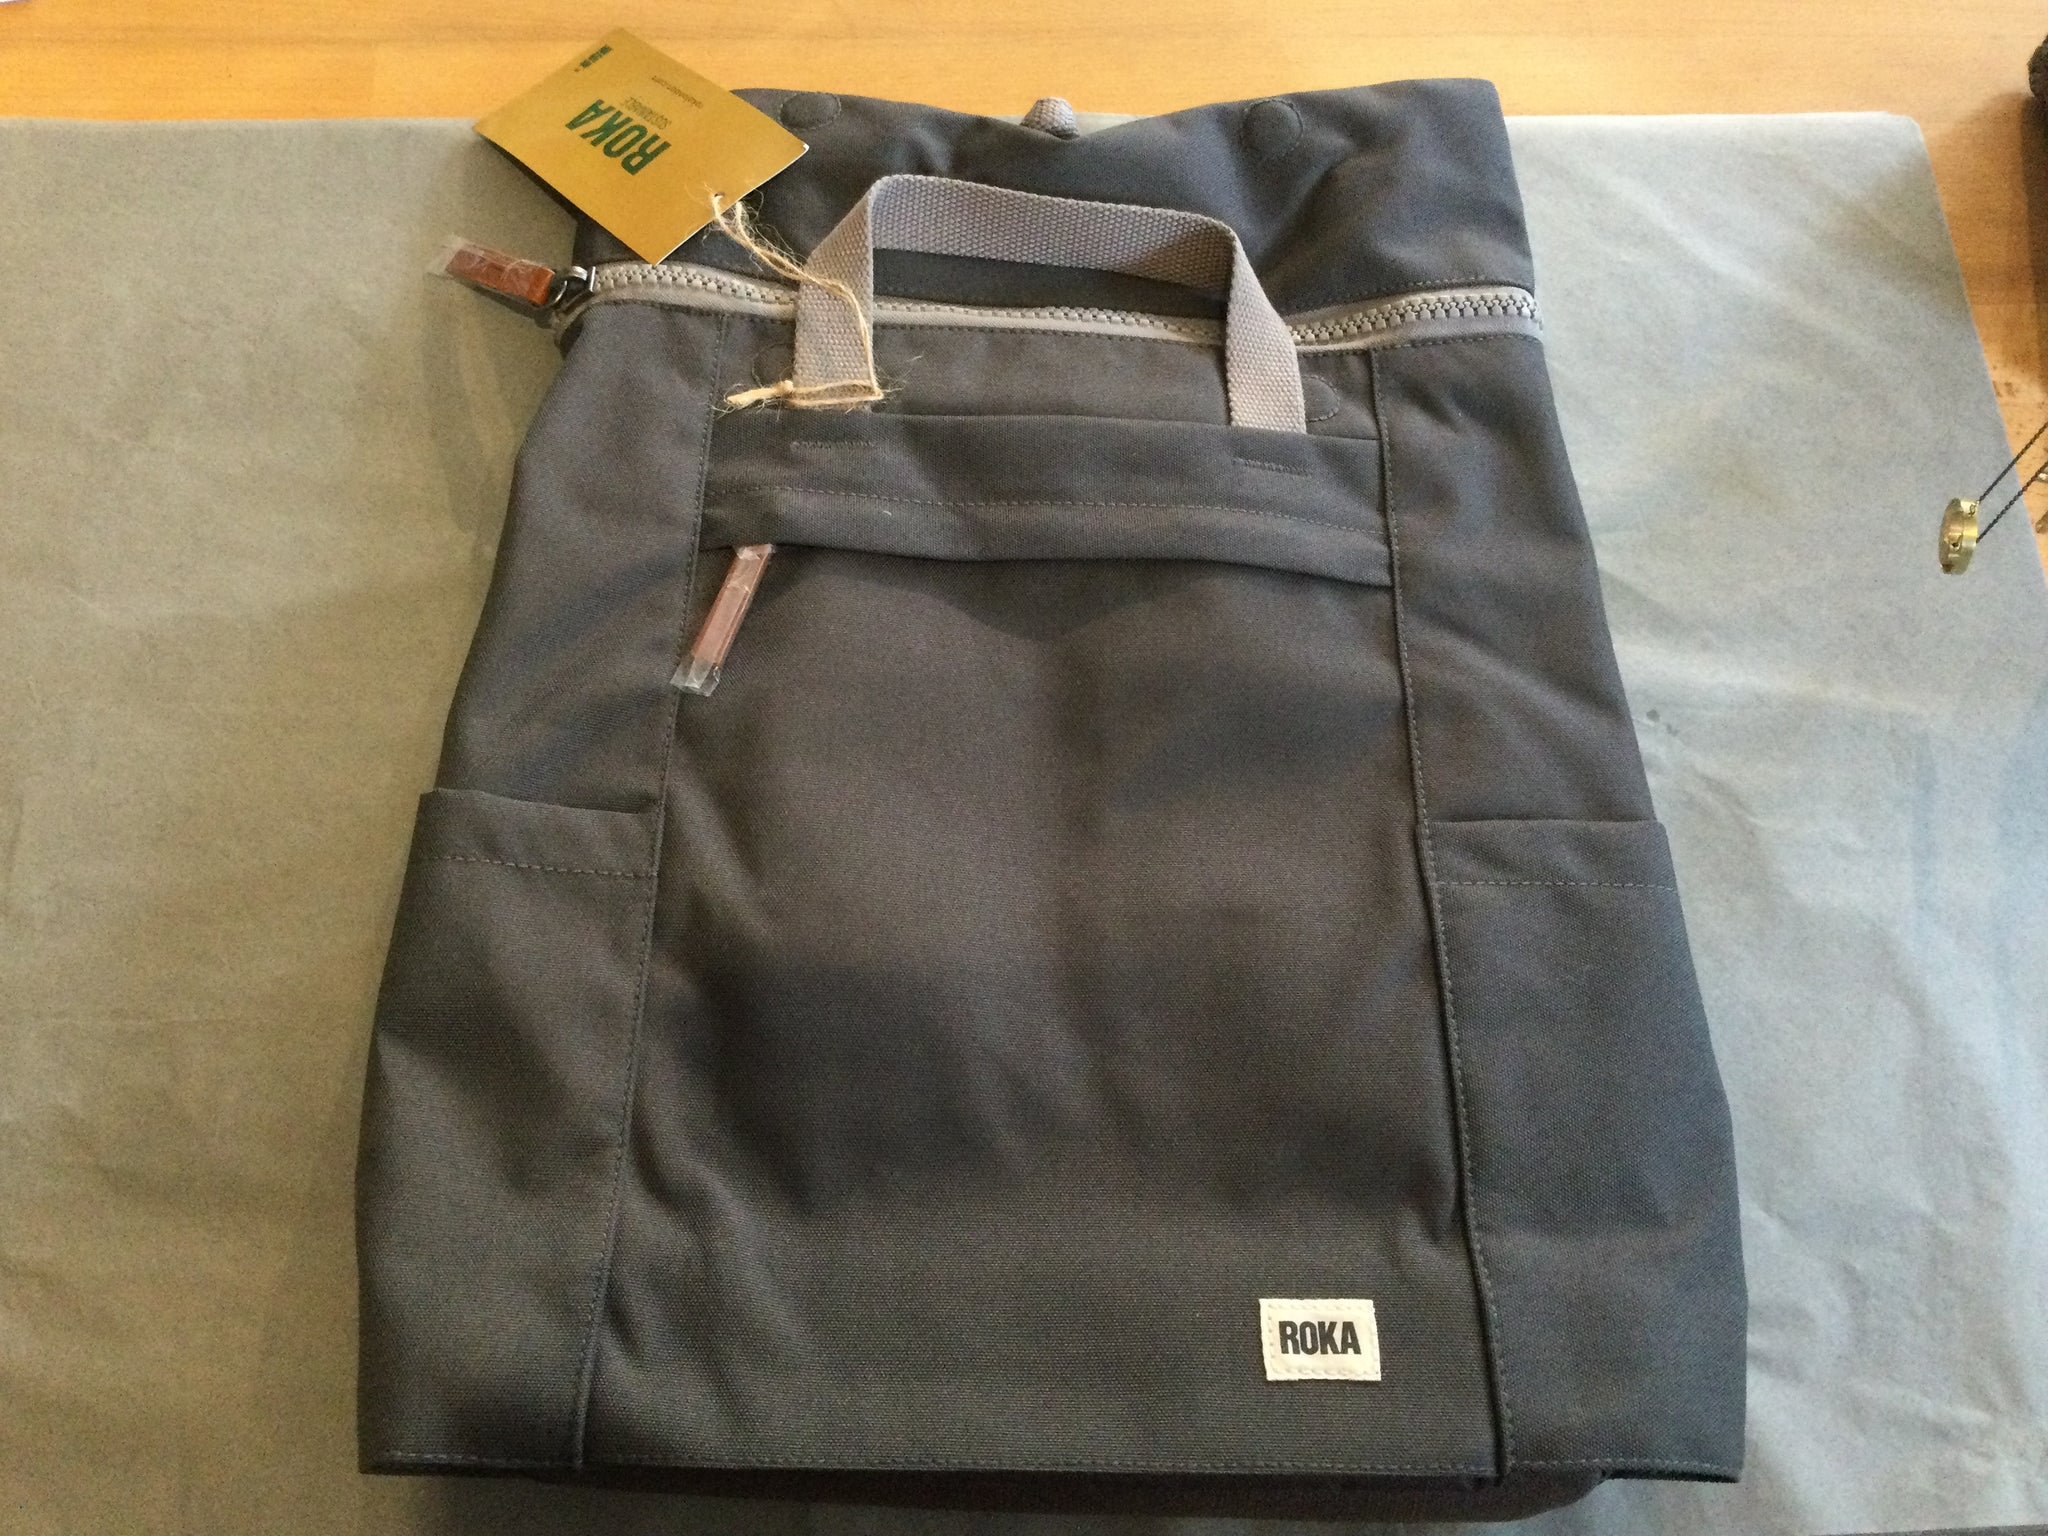 ROKA Finchley Sustainable Medium rucksack